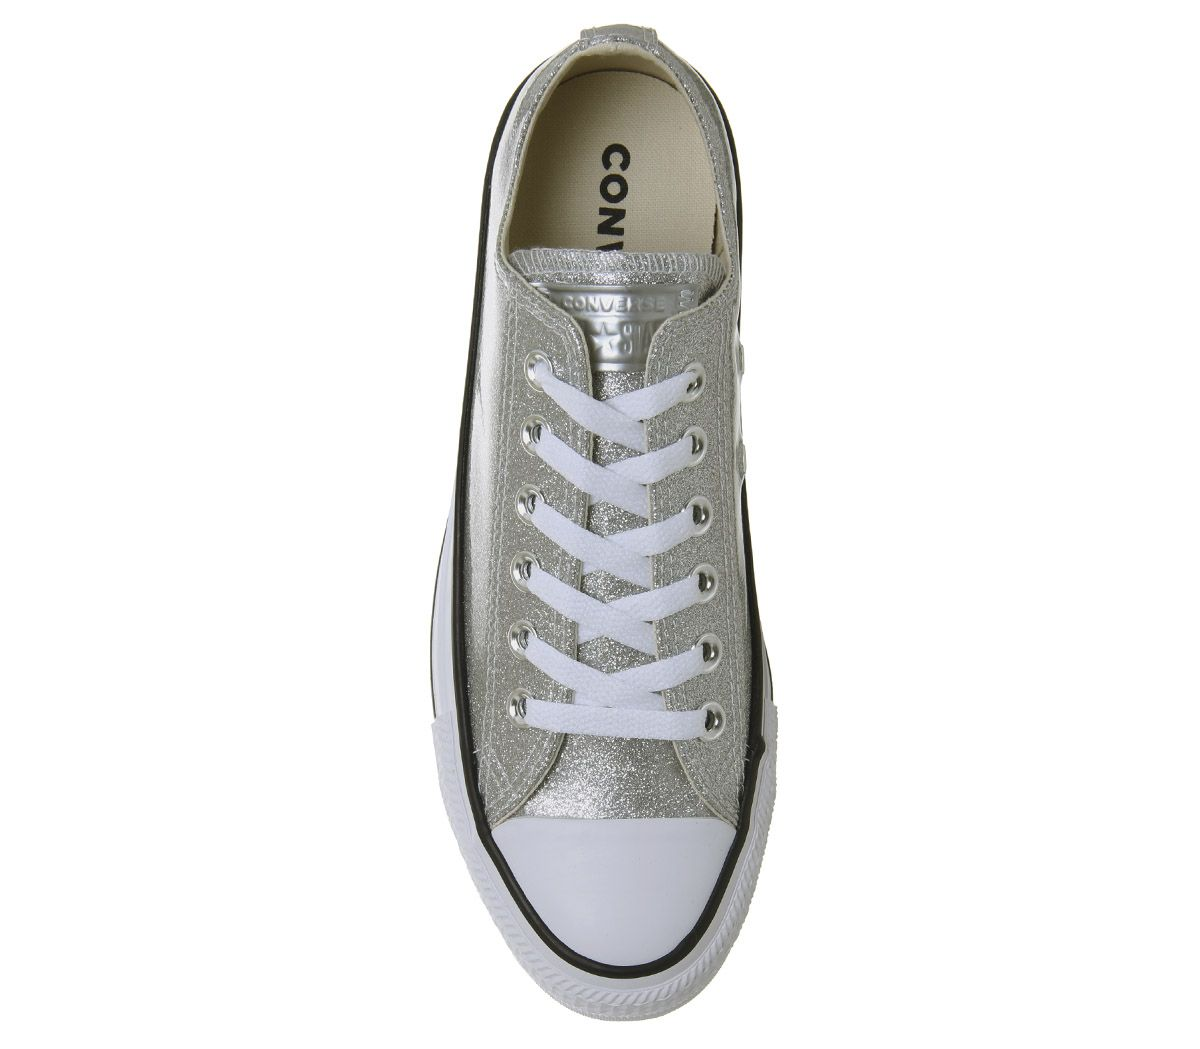 Womens-Converse-Converse-All-Star-Low-Trainers-Silver-White-Trainers-Shoes thumbnail 10